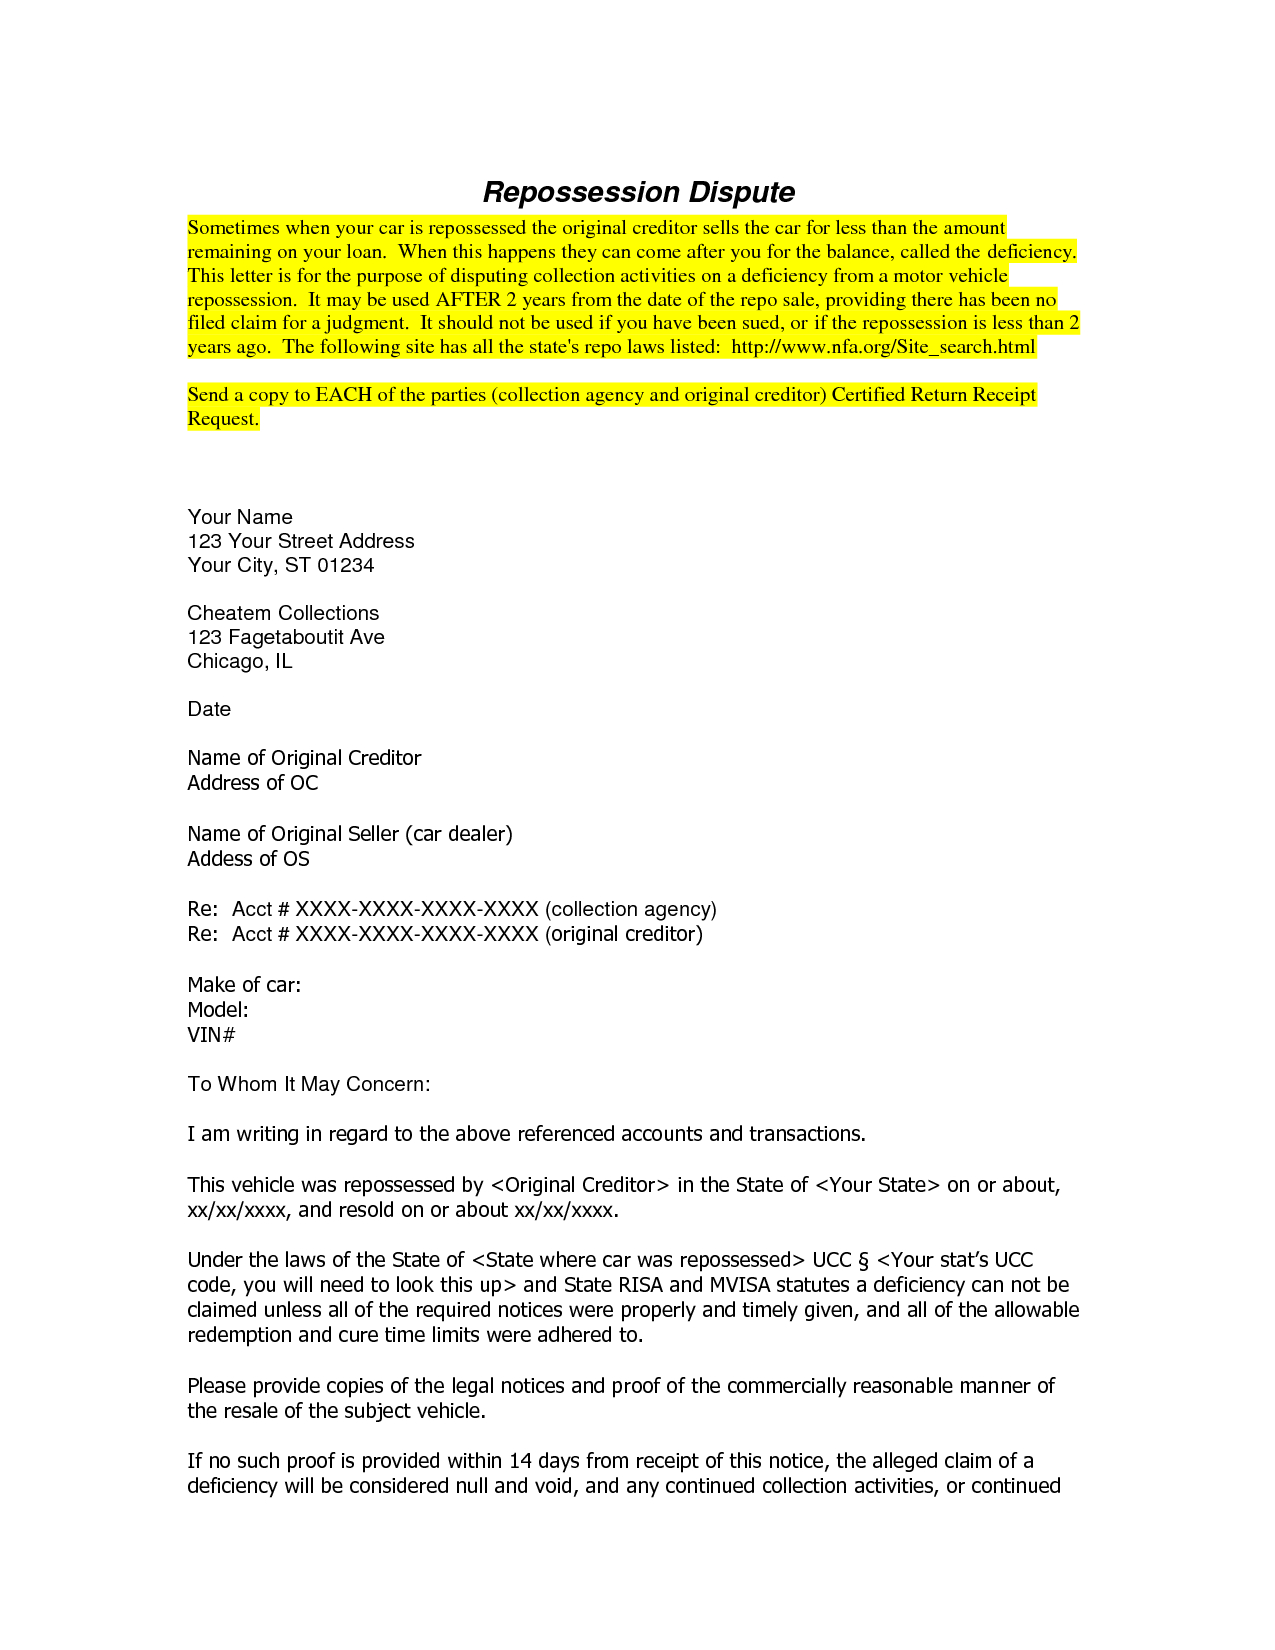 Vehicle Repossession Letter Template Samples | Letter Template